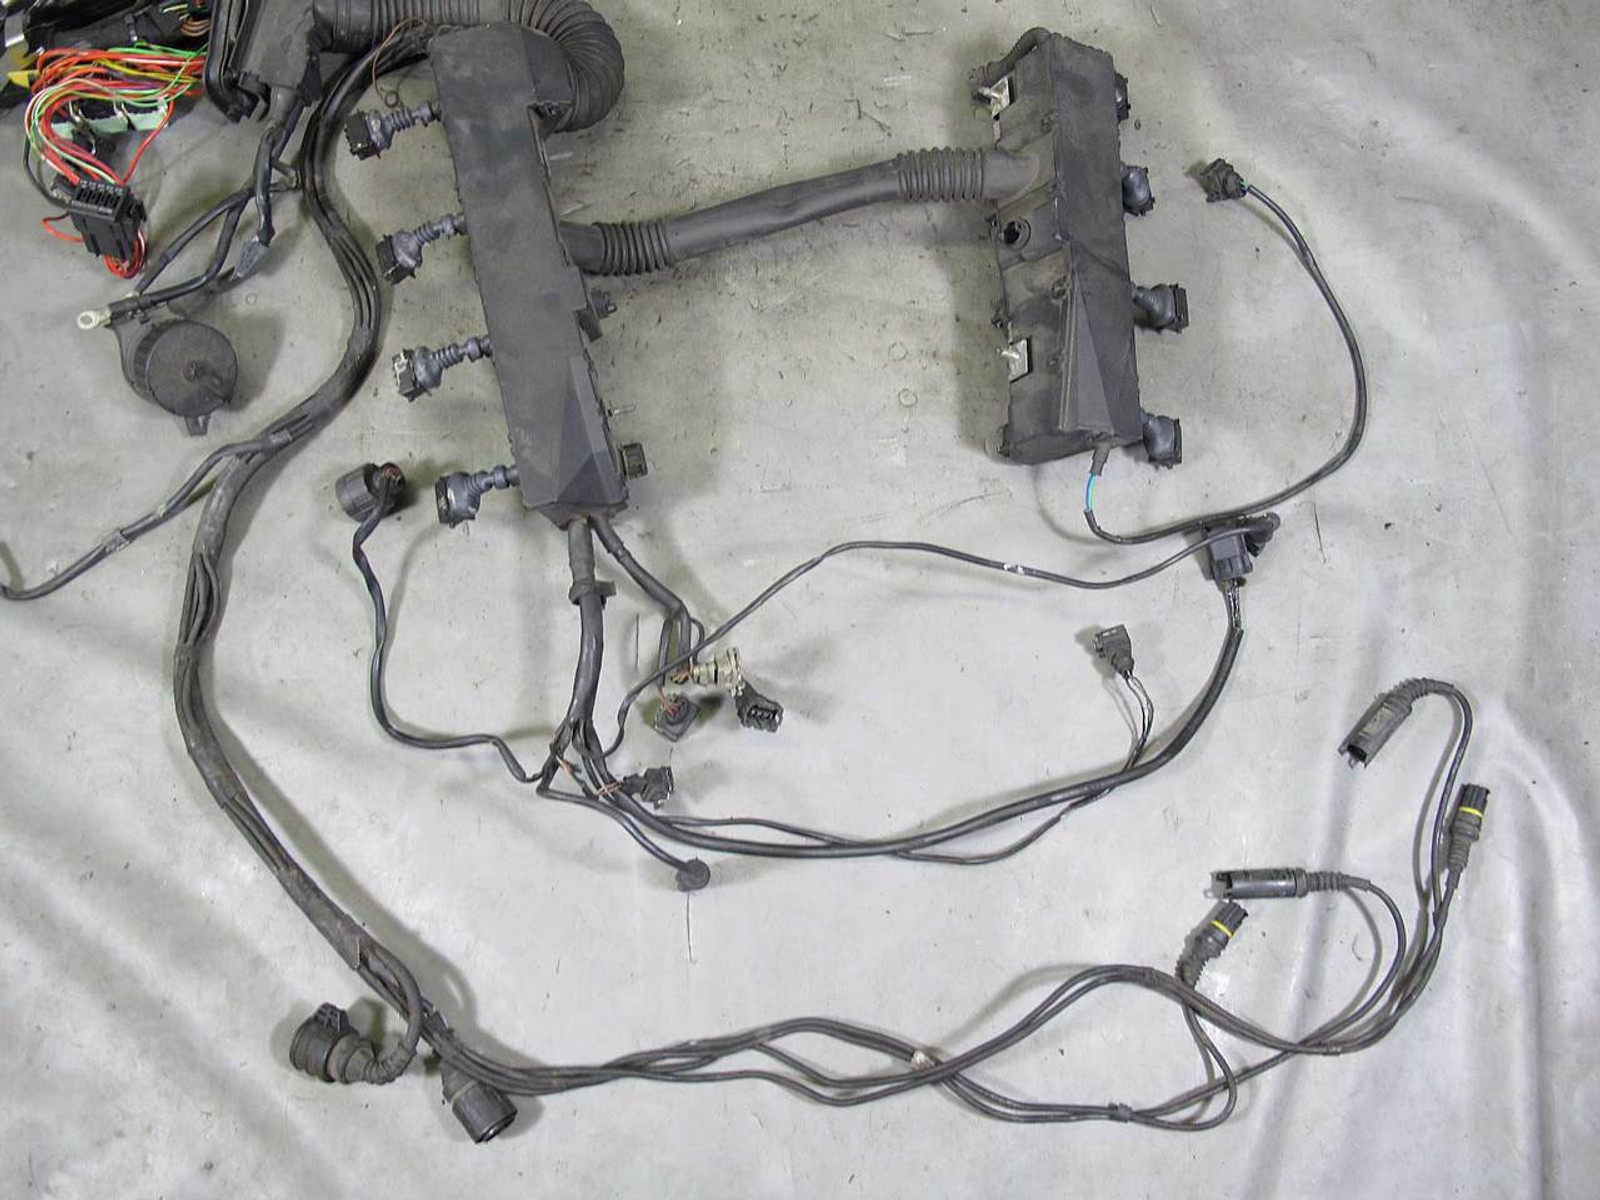 medium resolution of bmw 740il engine wiring harness wiring diagram third level bmw 740il engine swap 1996 1997 bmw